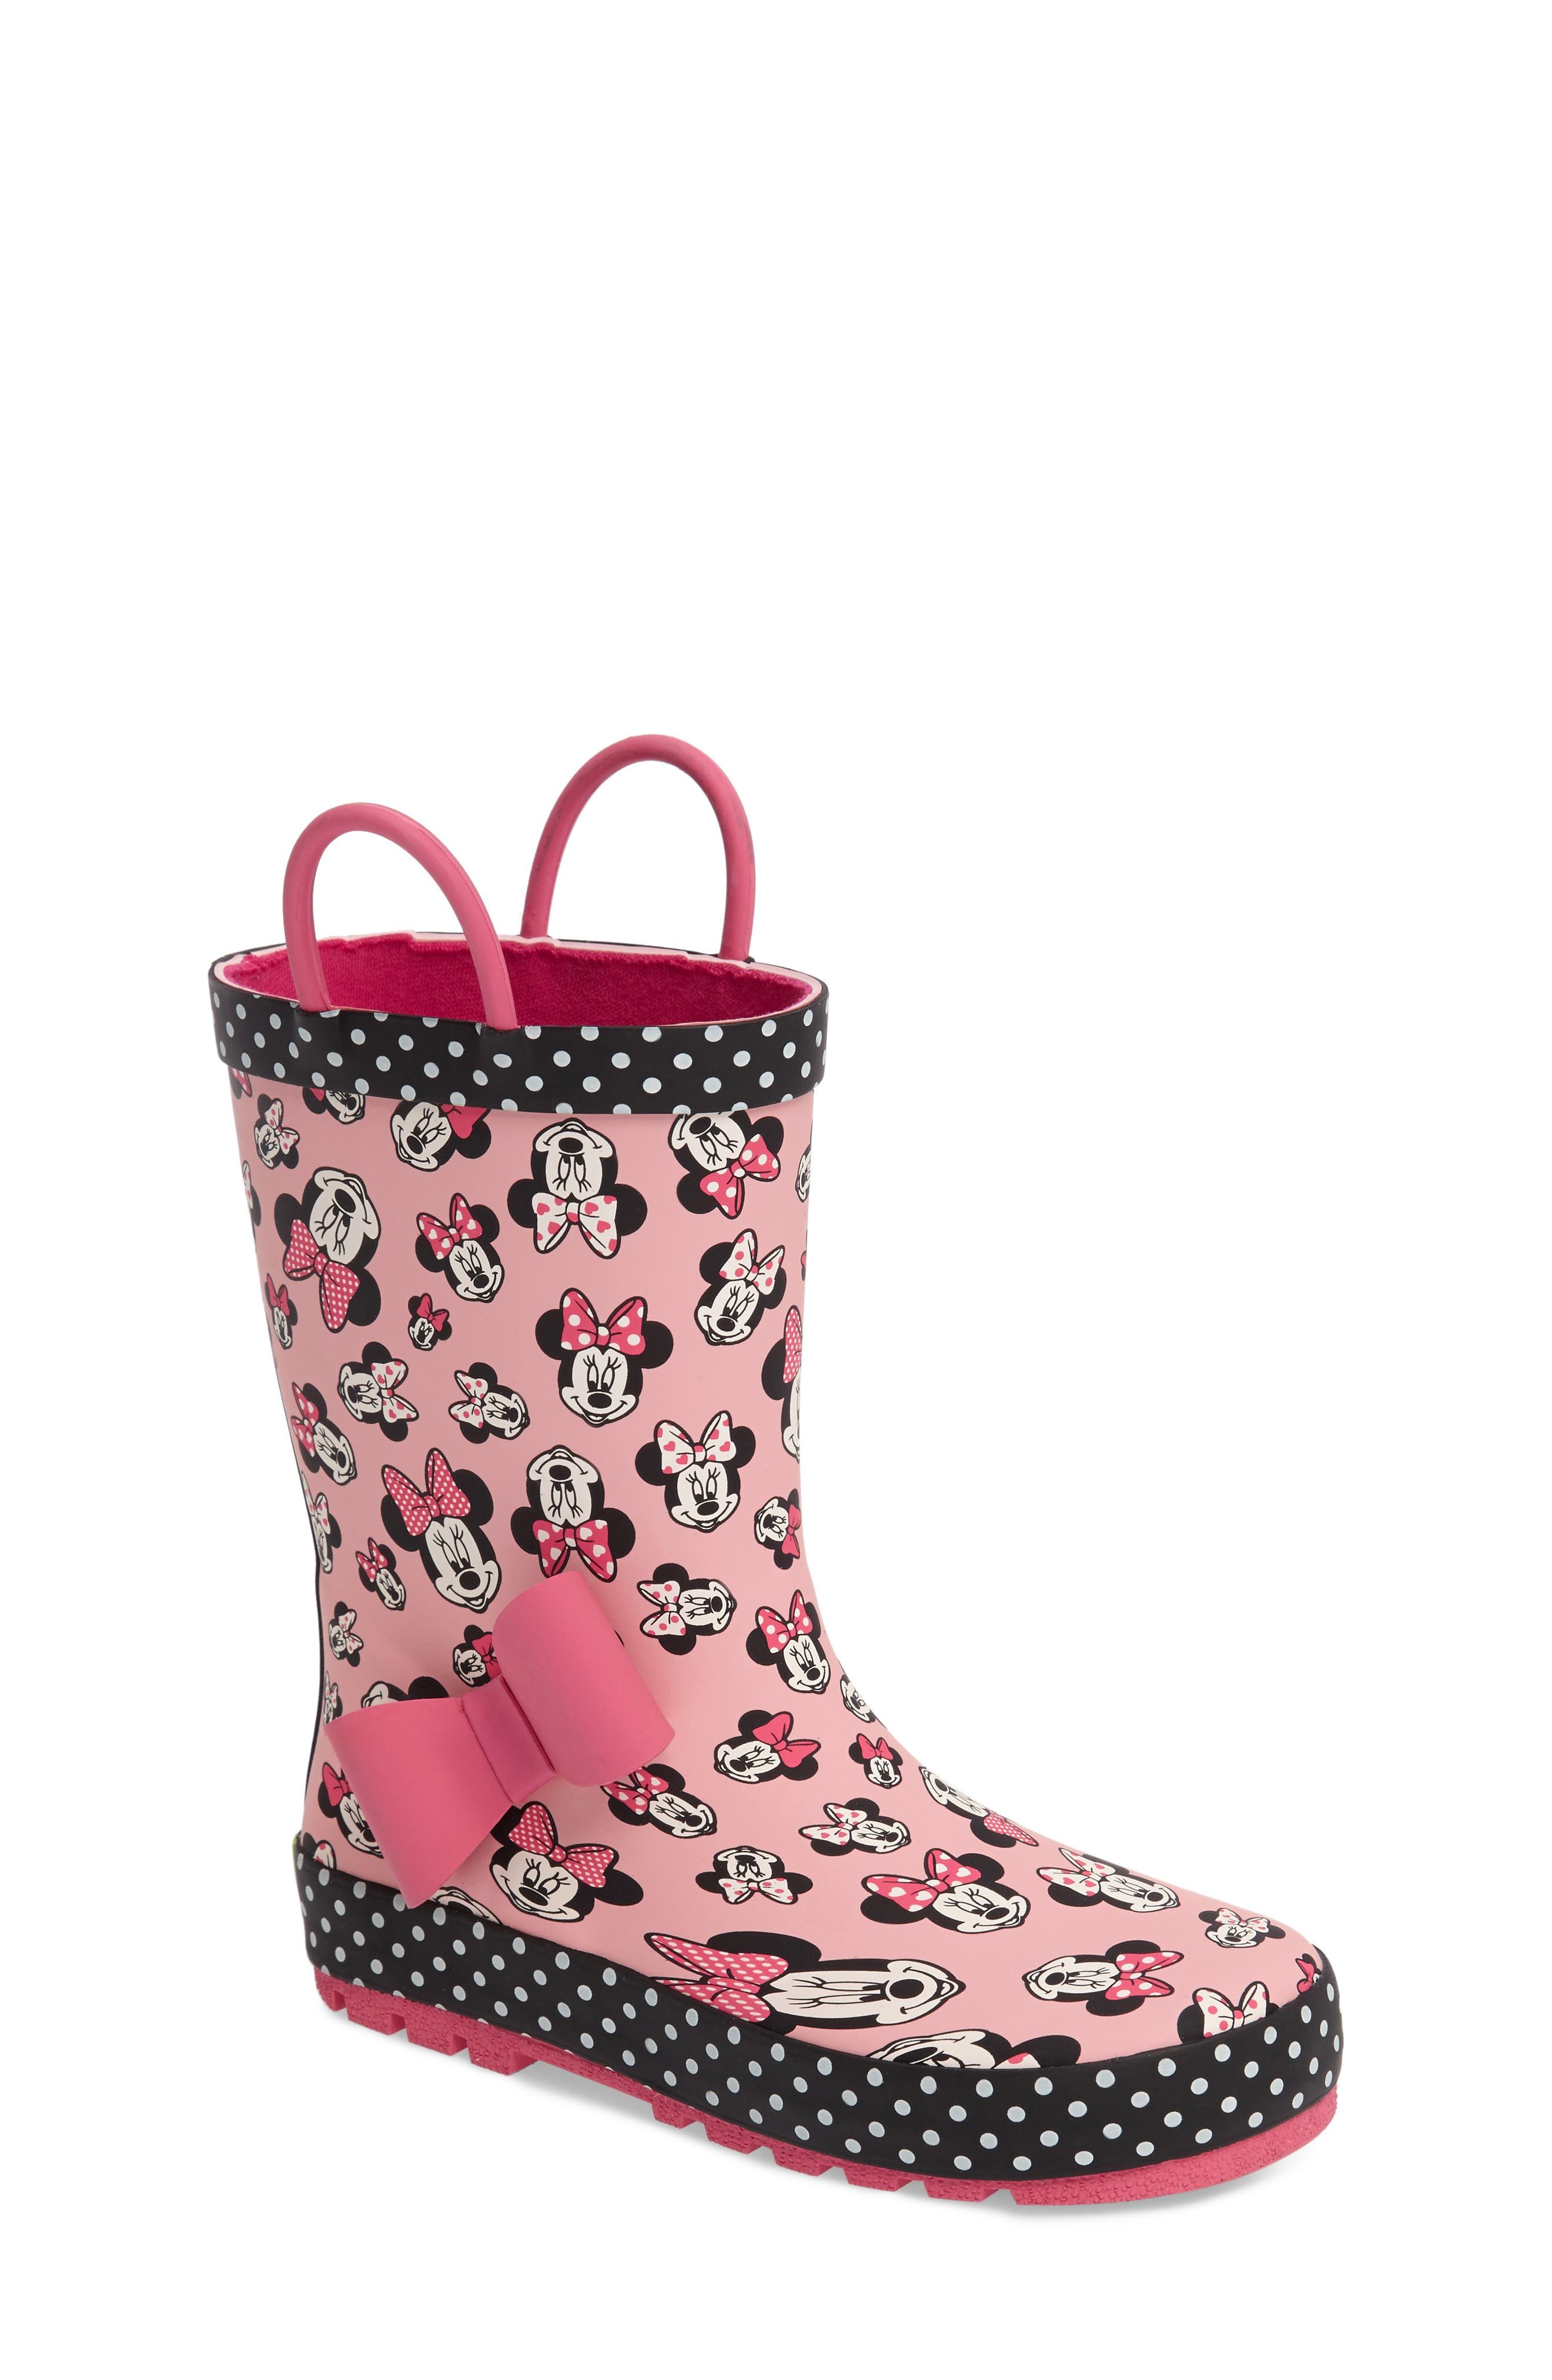 Western Chief Disney® Minnie Mouse Waterproof Rain Boot (Walker, Toddler, Little Kid & Big Kid)